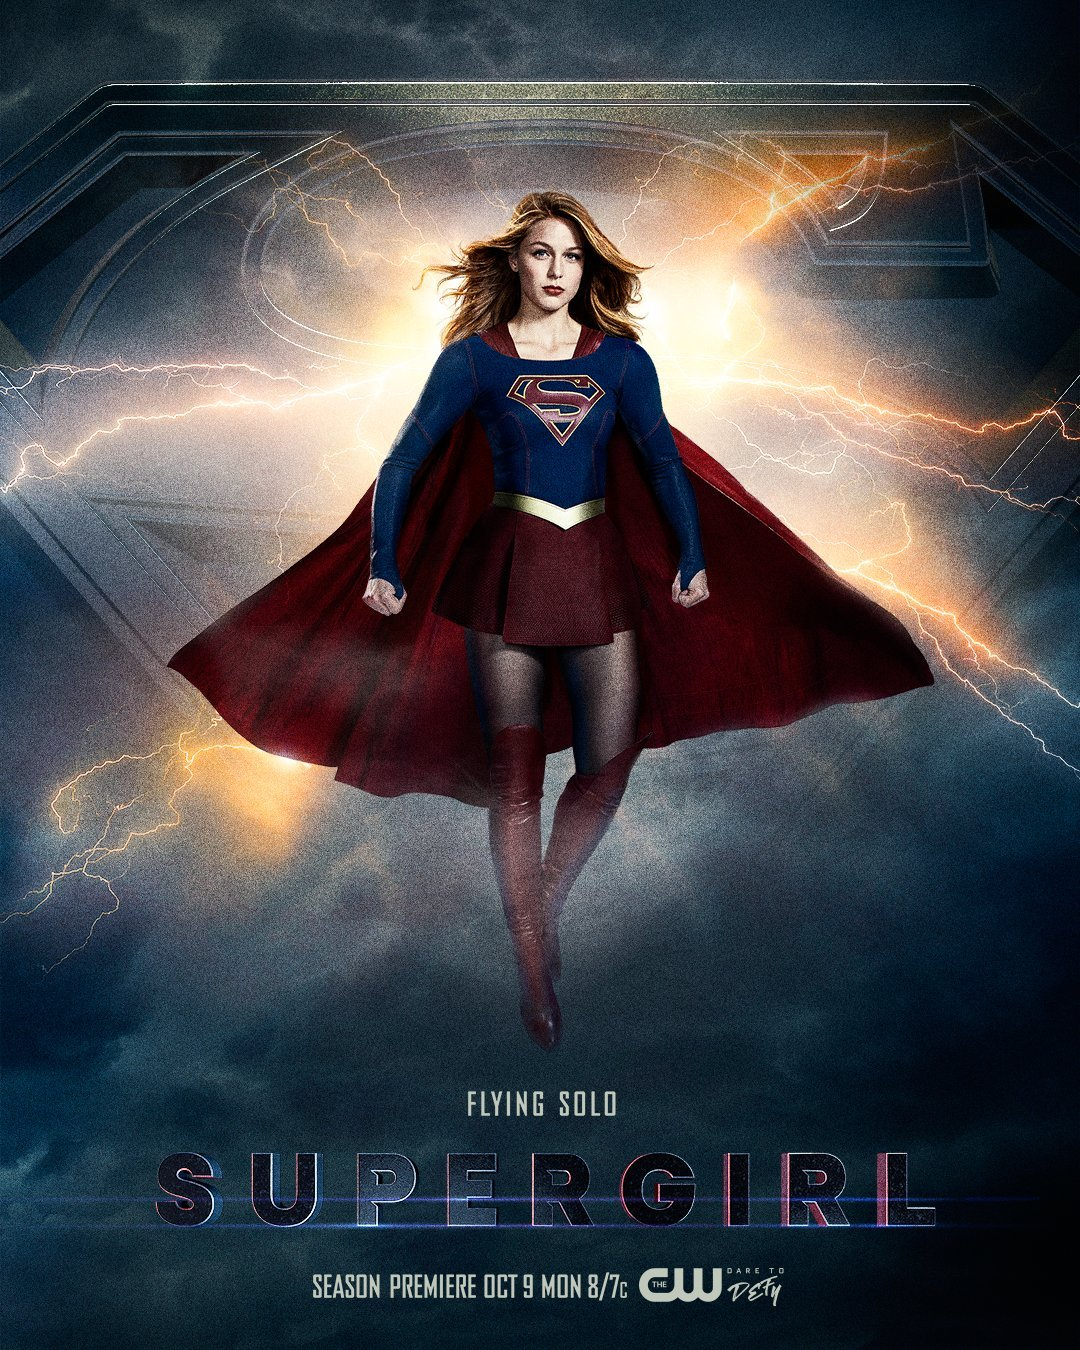 Supergirl saison 3 poster Girl of Steel